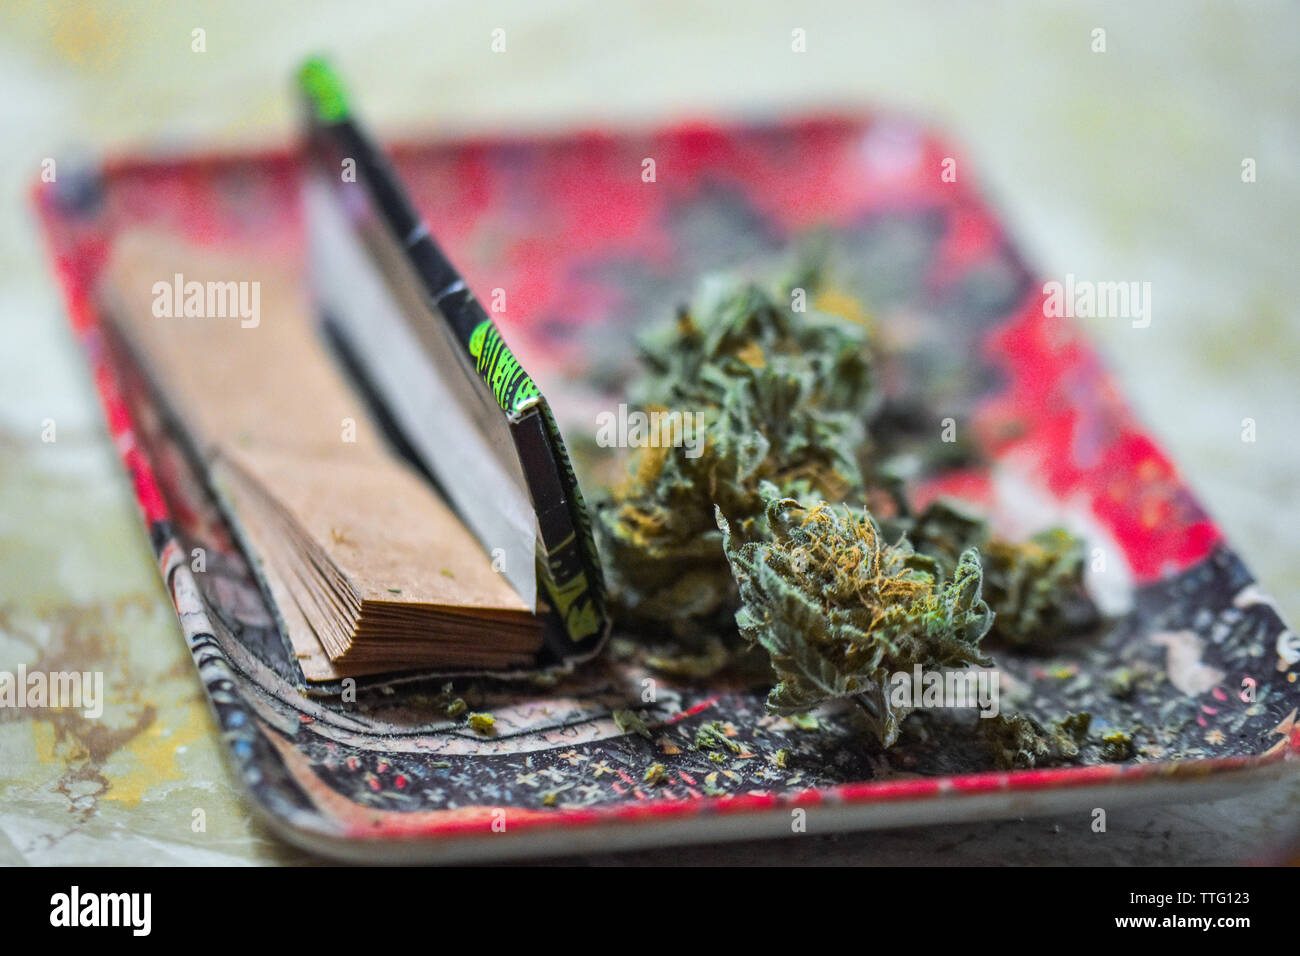 Marijuana on Tray with Cigarette Papers - Stock Image